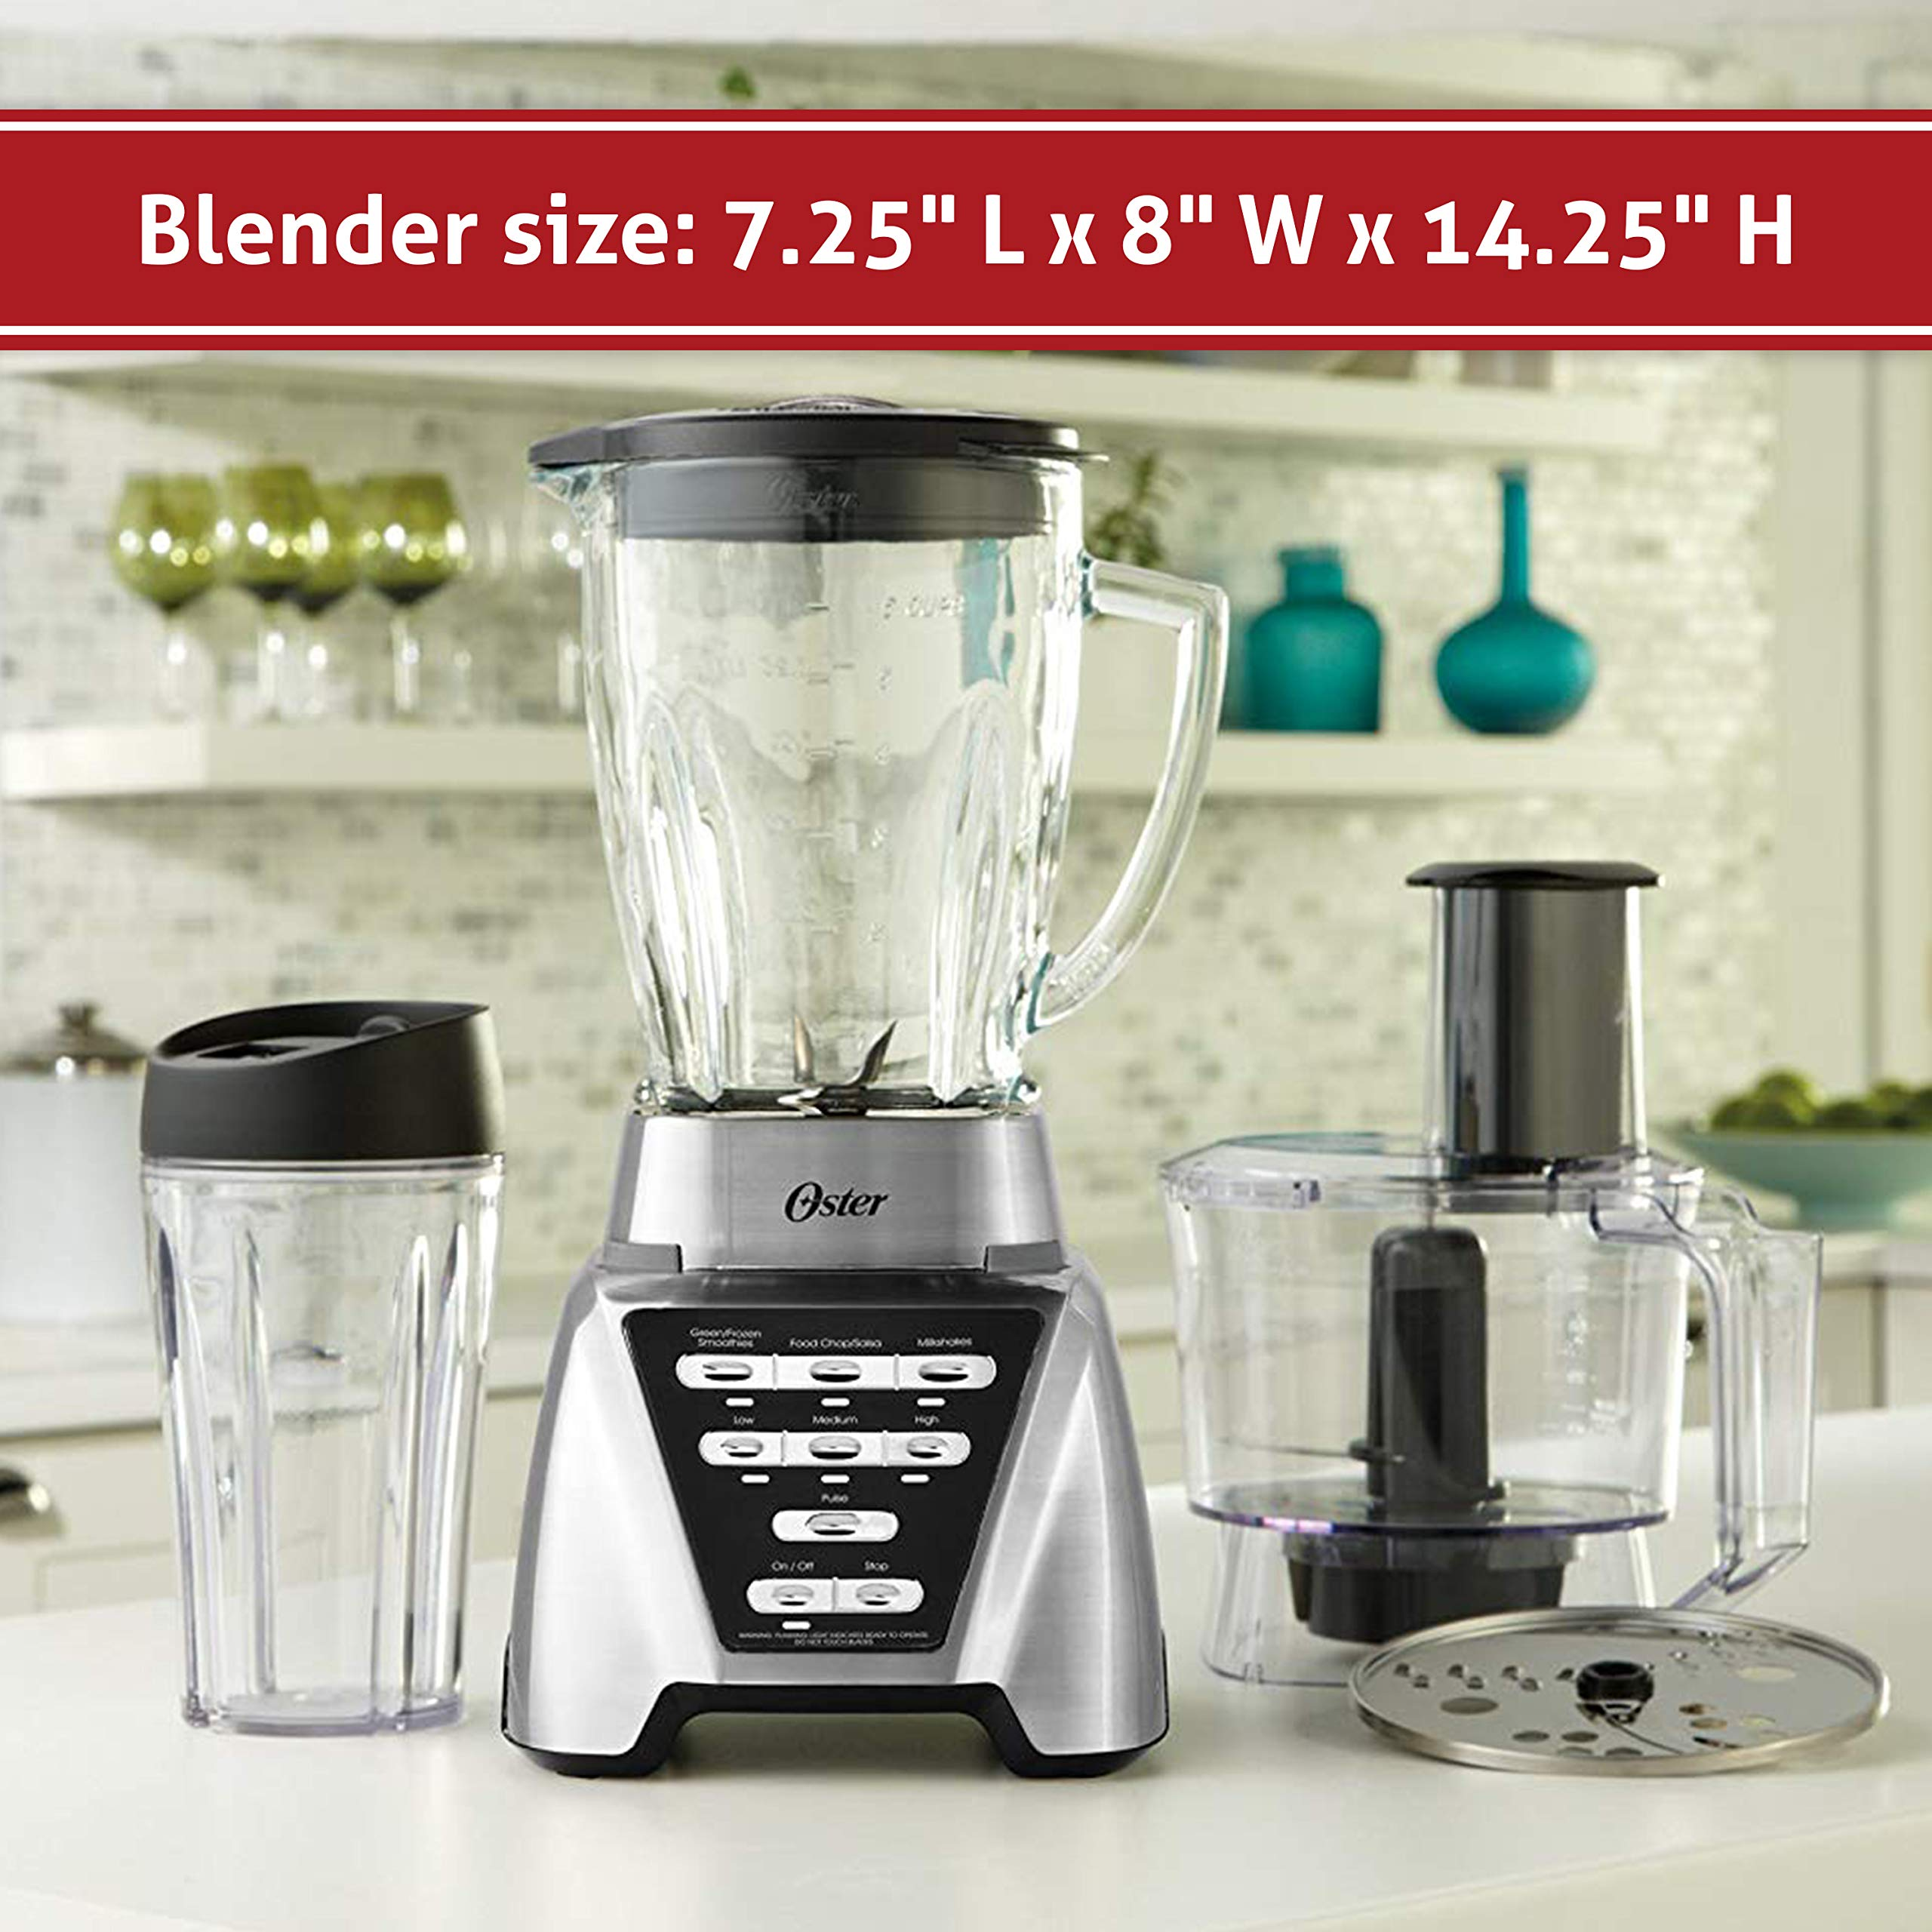 Oster Pro 1200 Blender with Glass Jar plus Smoothie Cup & Food Processor Attachment, Brushed Nickel by Oster (Image #6)